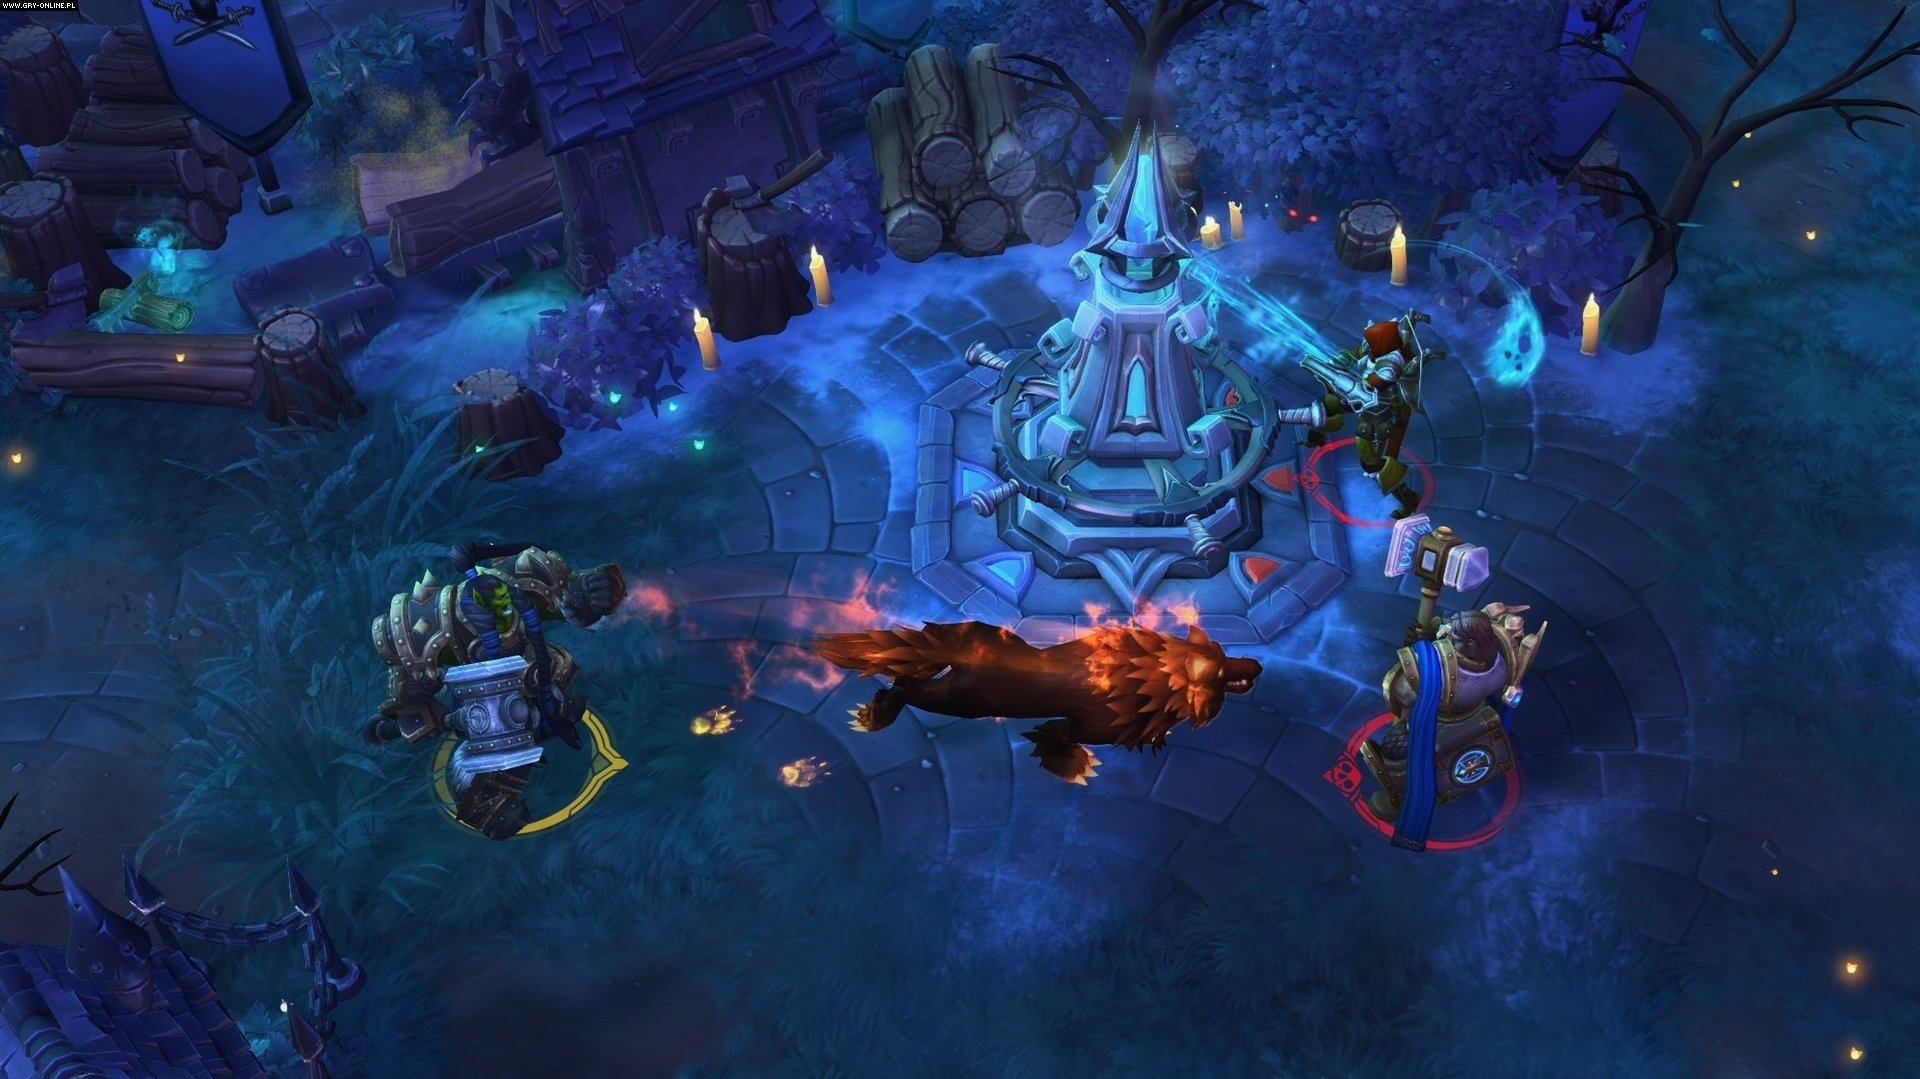 Heroes of the Storm image #3